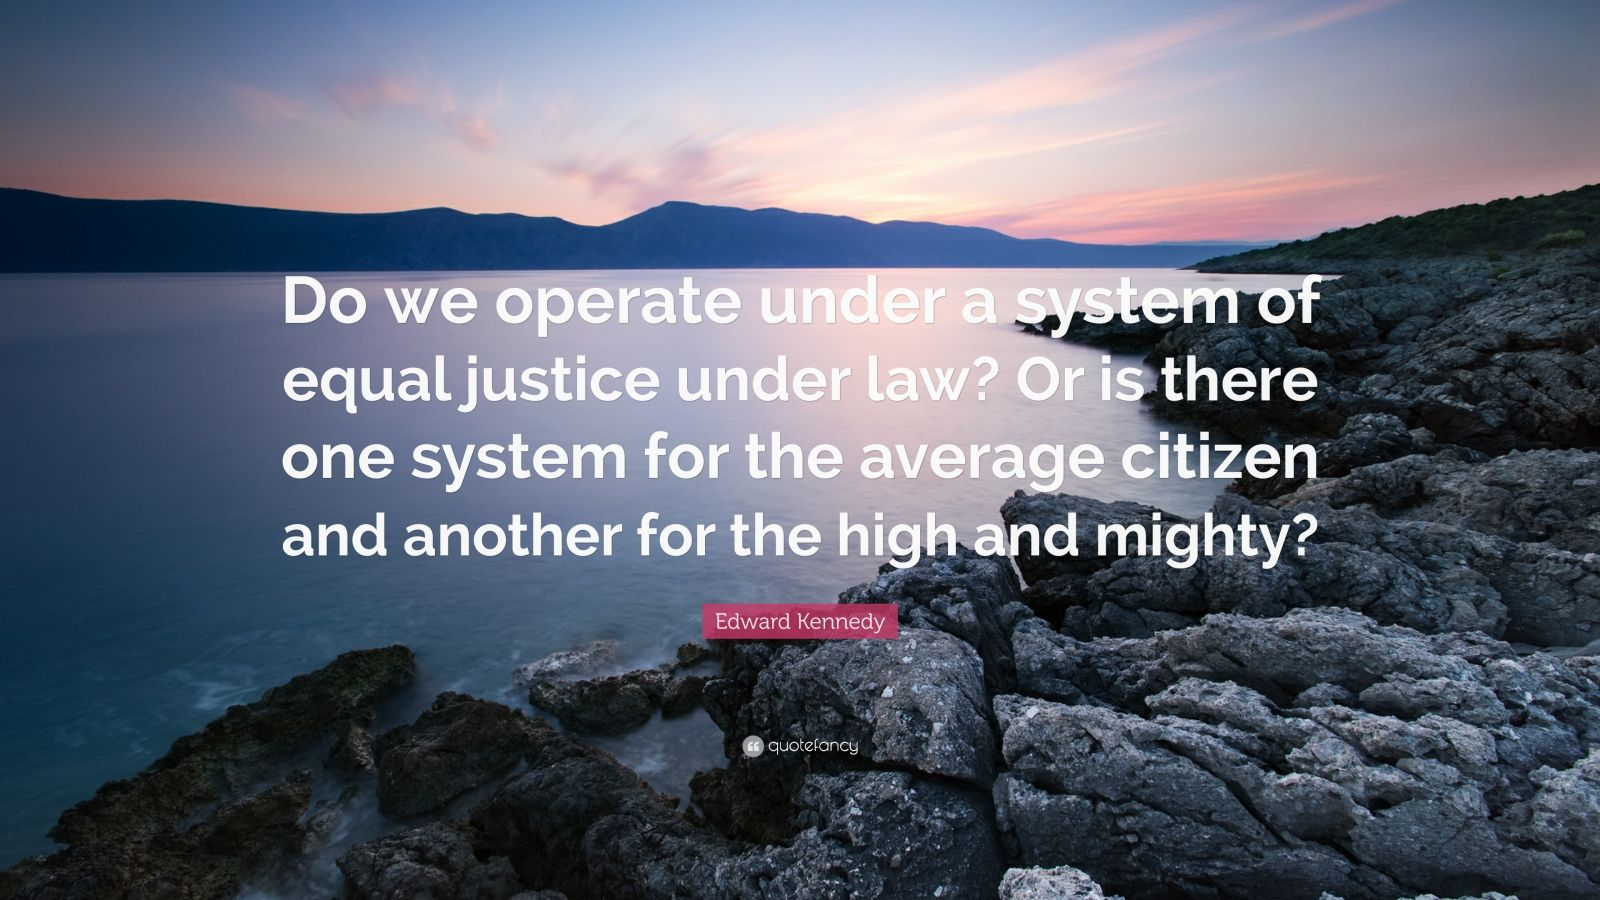 """Edward Kennedy Quote: """"Do we operate under a system of equal justice under law? Or is there one system for the average citizen and another for the high and mighty?"""""""